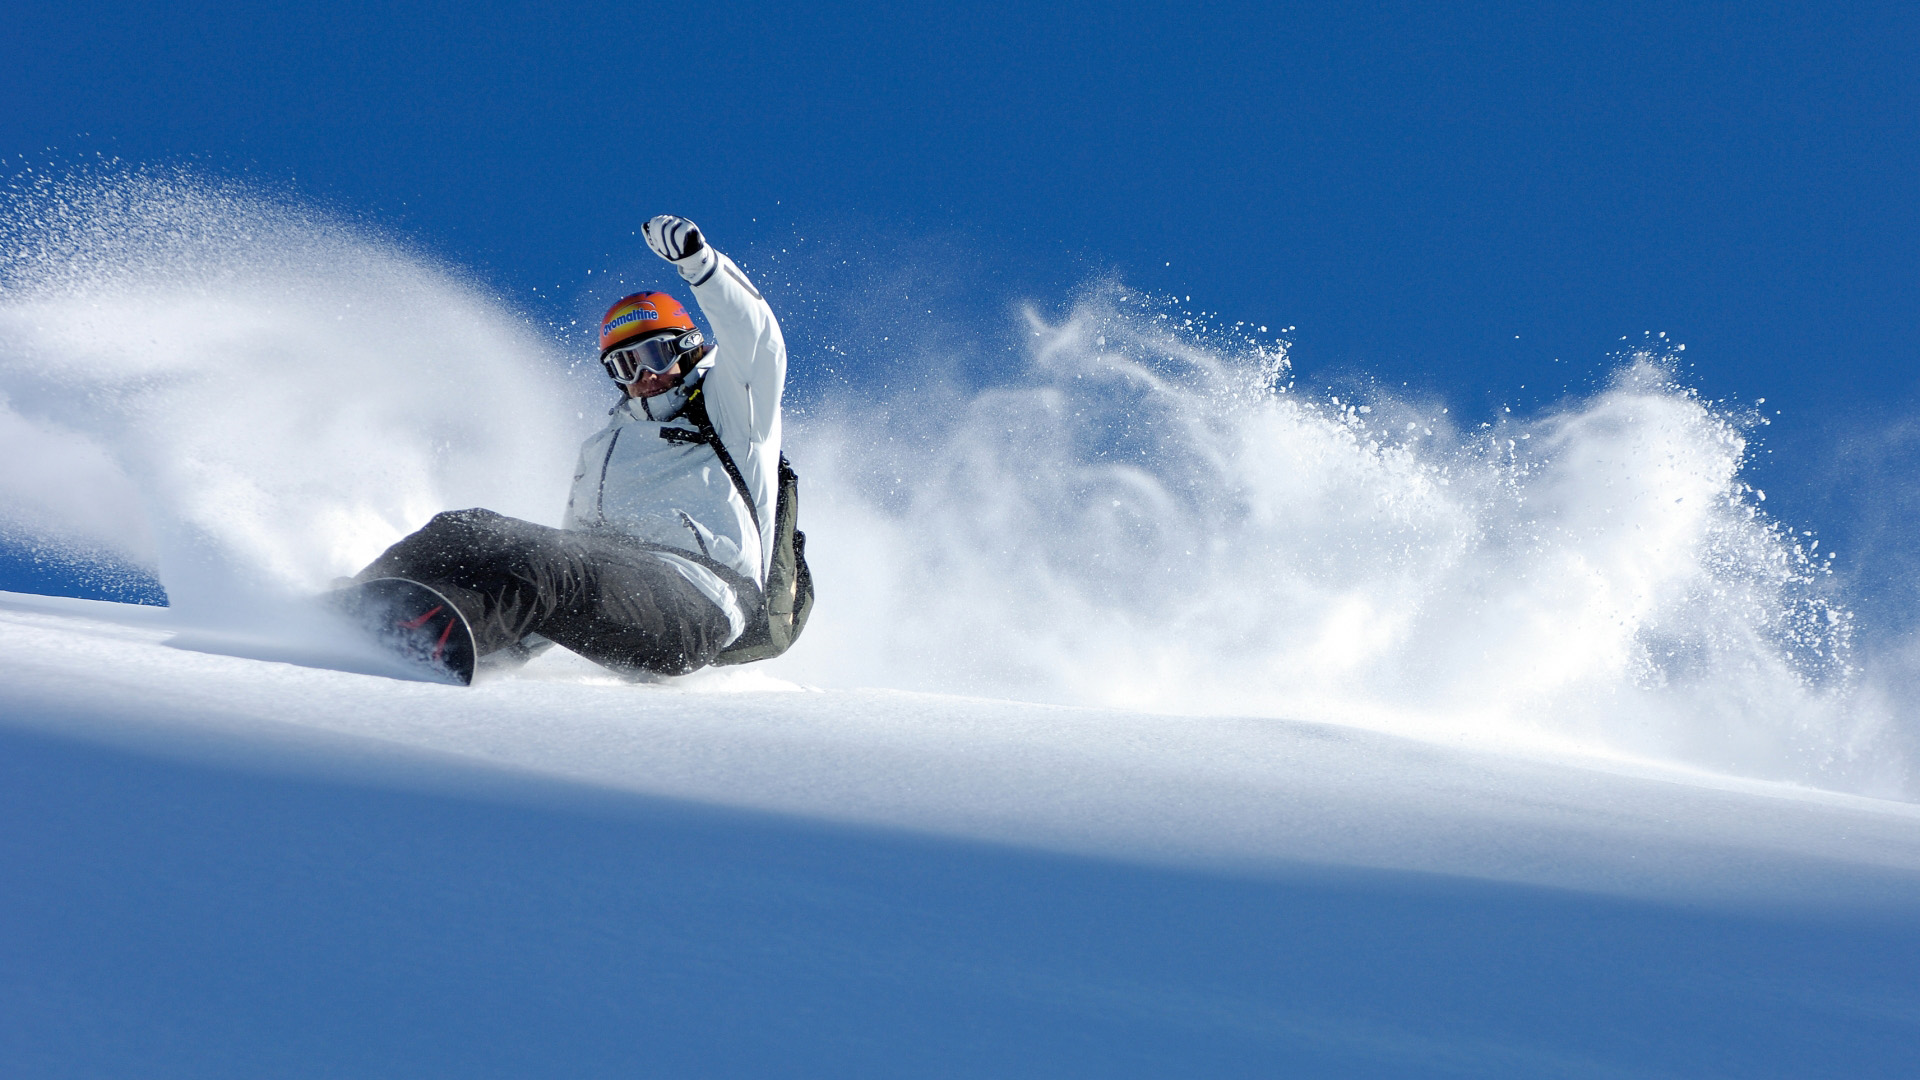 Skiing_Wallpapers_HD_1920x1080